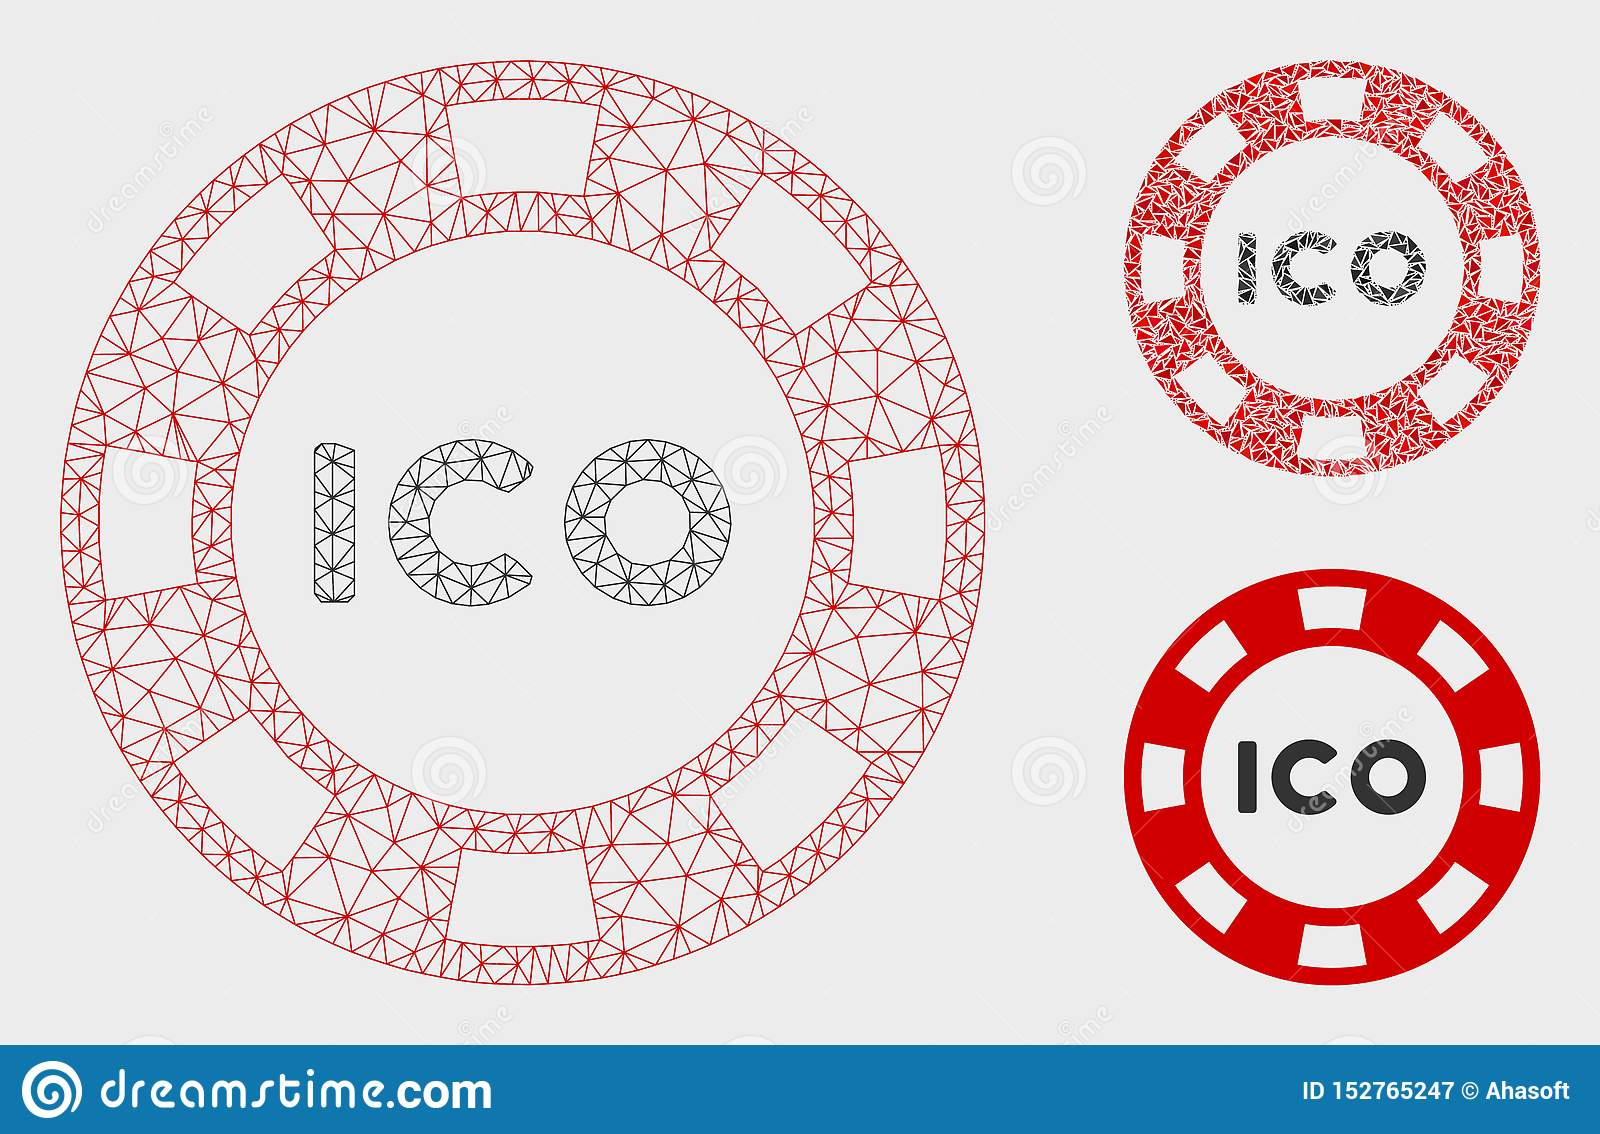 ICO Token Vector Mesh 2D Model And Triangle Mosaic Icon